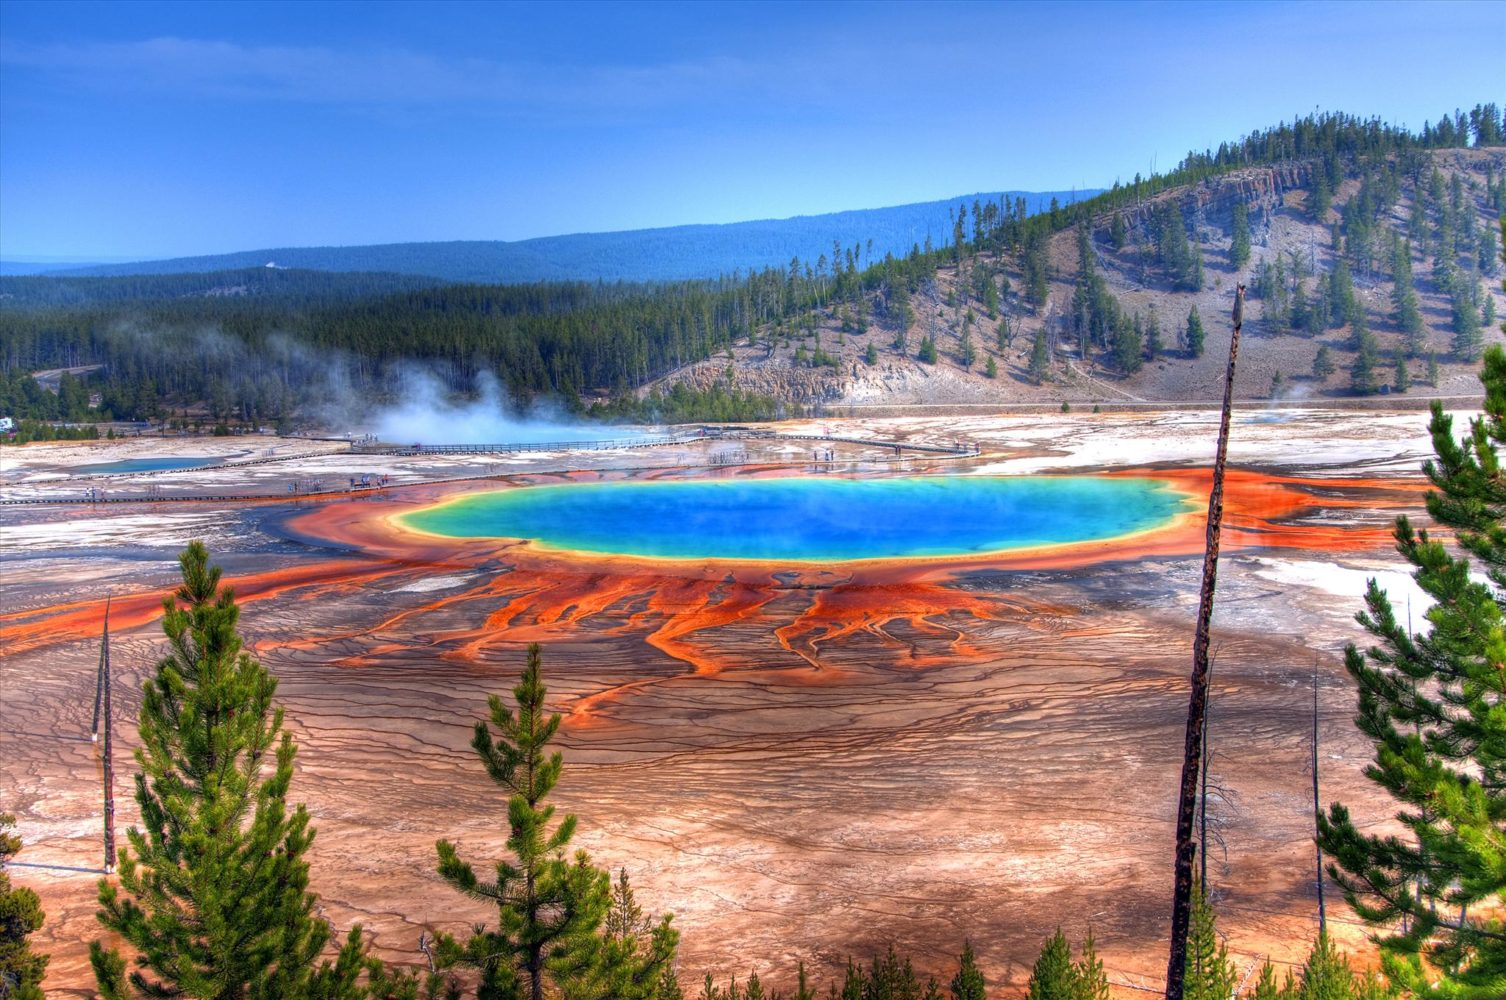 Visit Yellowstone National Park